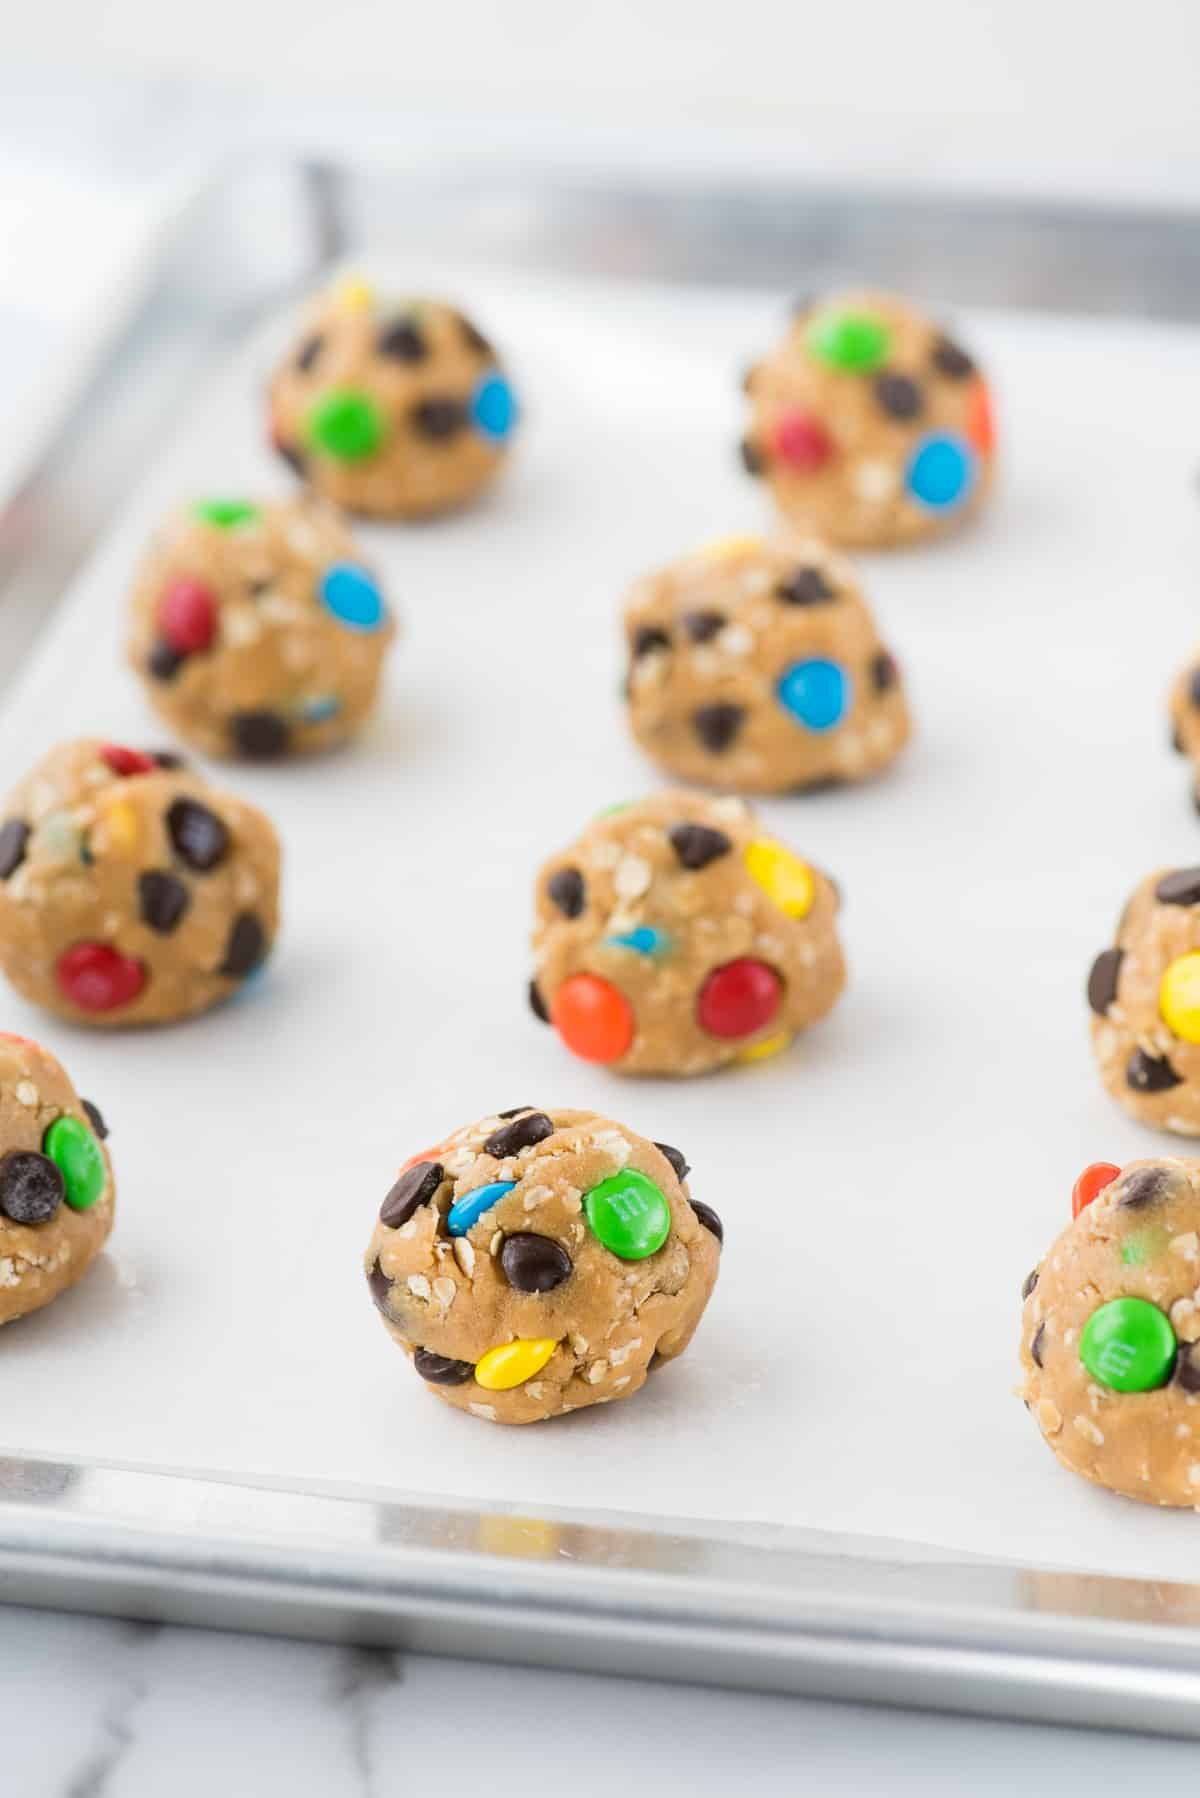 monster cookie dough balls on baking sheet with parchment paper